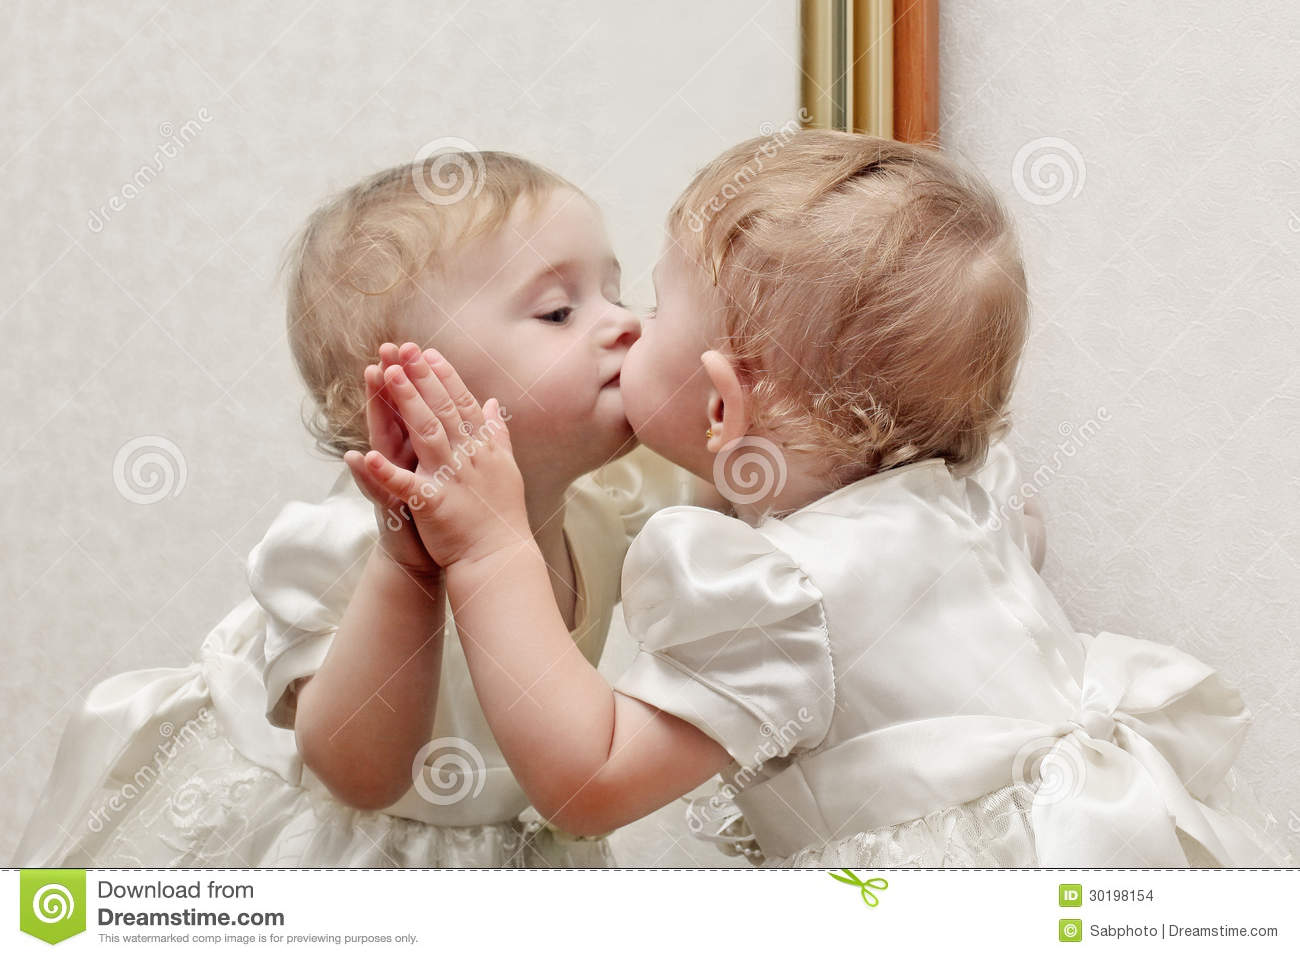 Baby Kissing A Mirror Stock Images - Image: 30198154